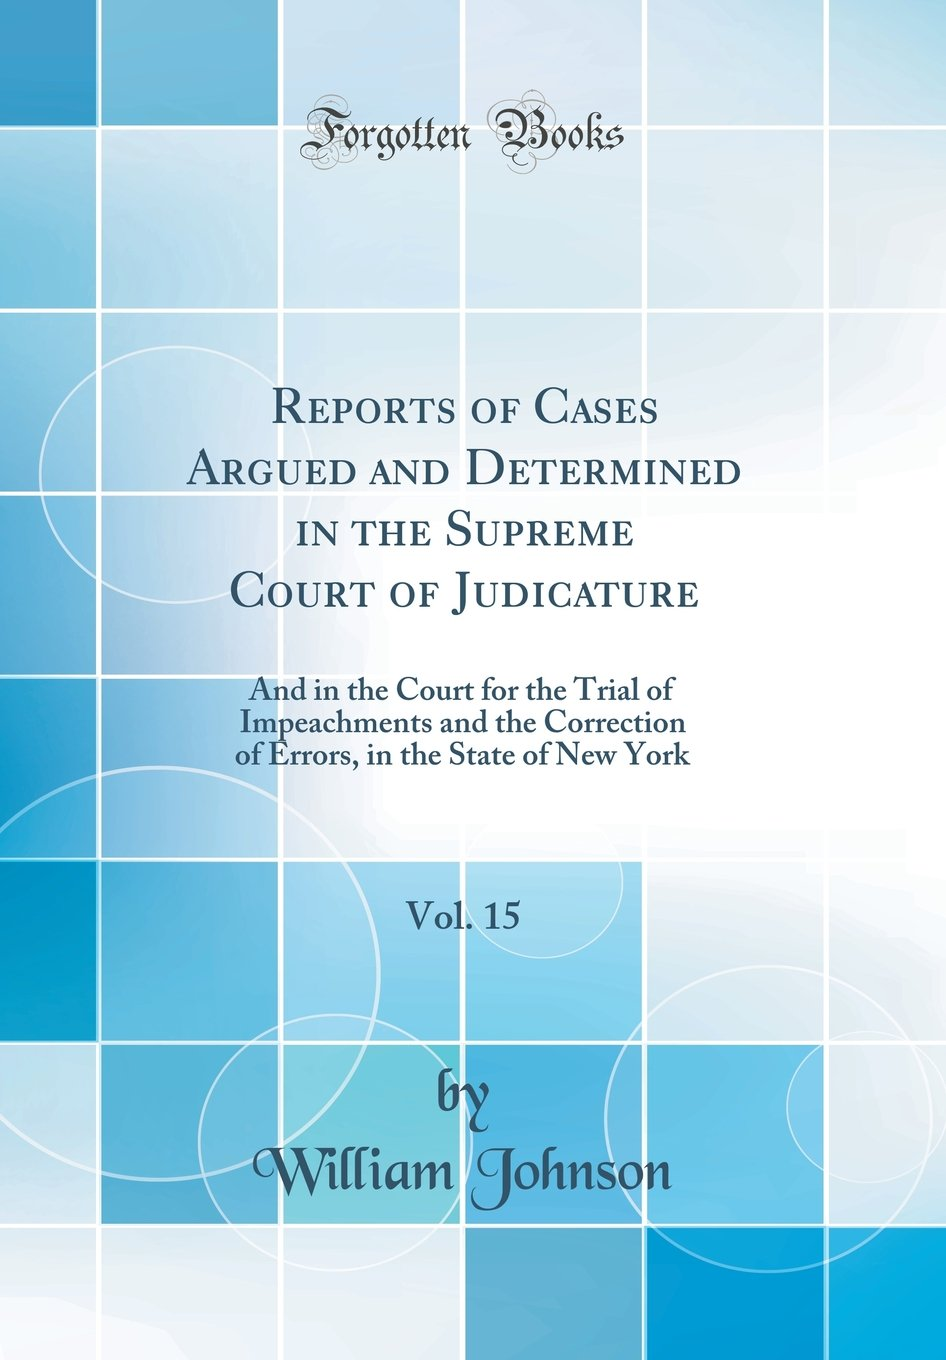 Read Online Reports of Cases Argued and Determined in the Supreme Court of Judicature, Vol. 15: And in the Court for the Trial of Impeachments and the Correction ... in the State of New York (Classic Reprint) pdf epub